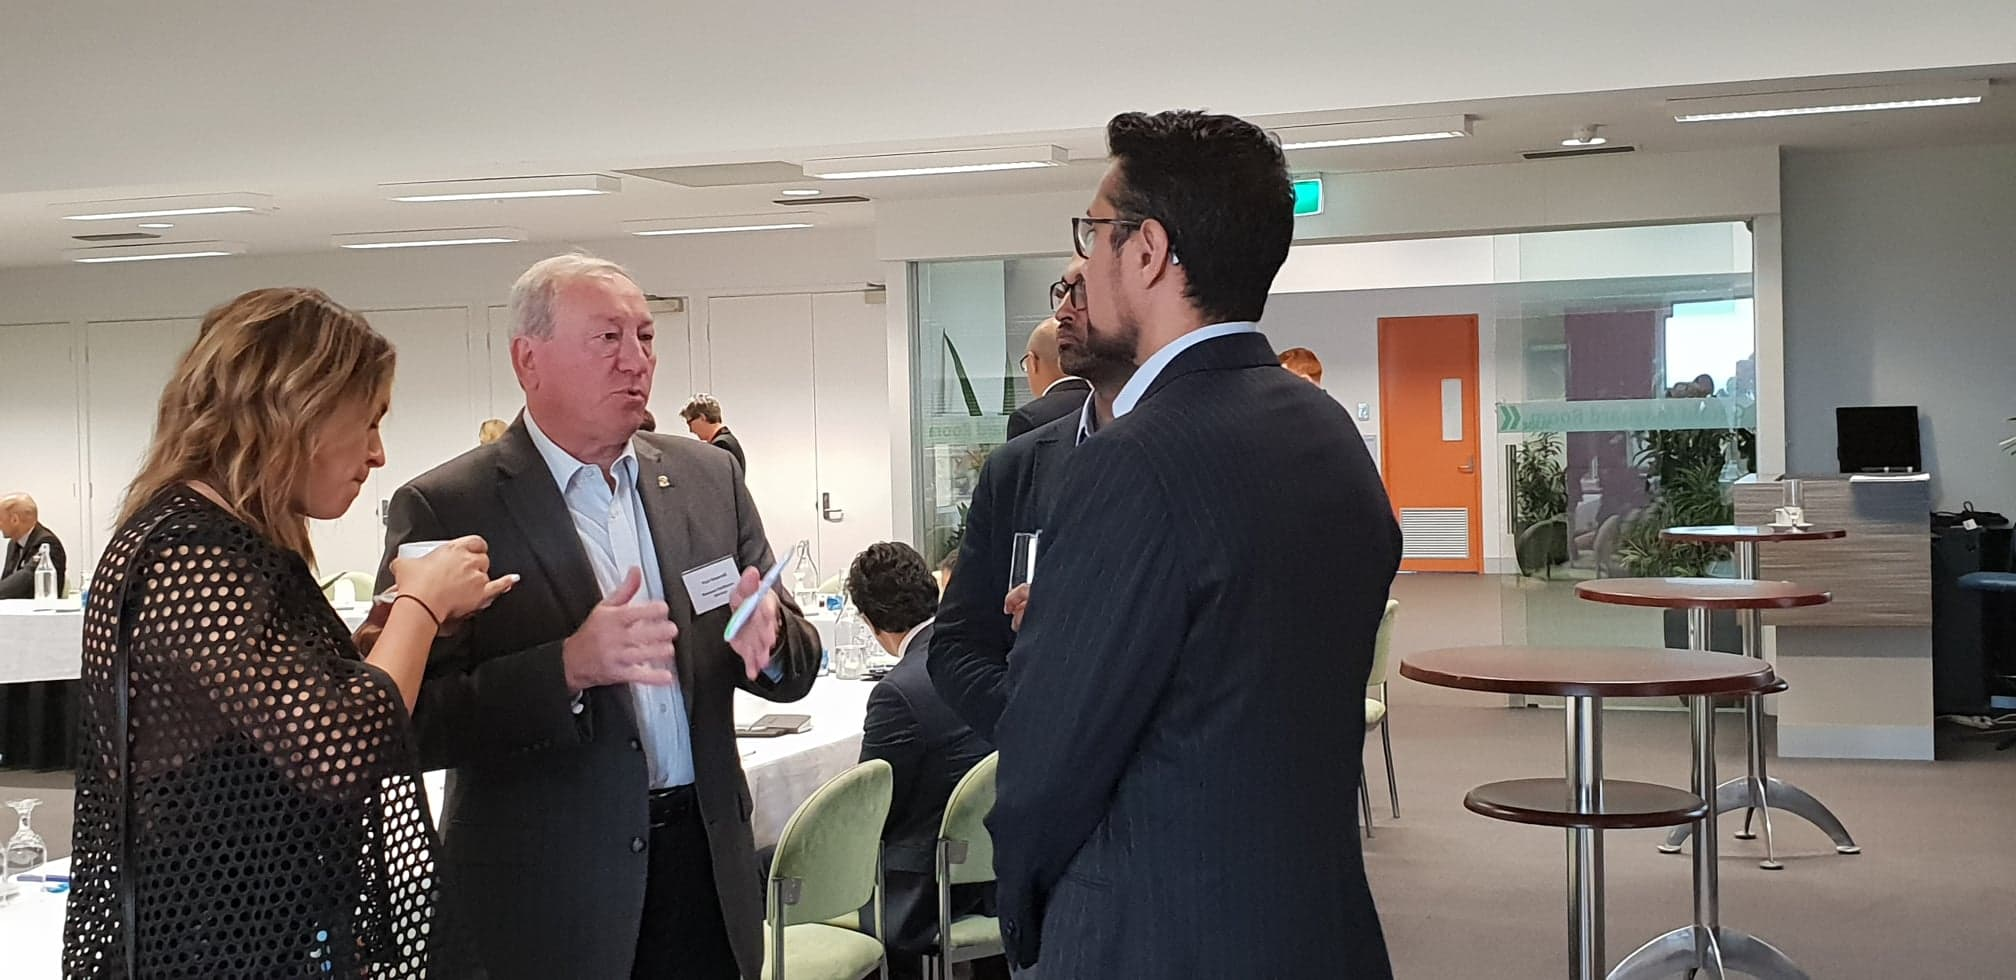 Partners give advise to each other at Melbourne's North Food Group industry roundtable